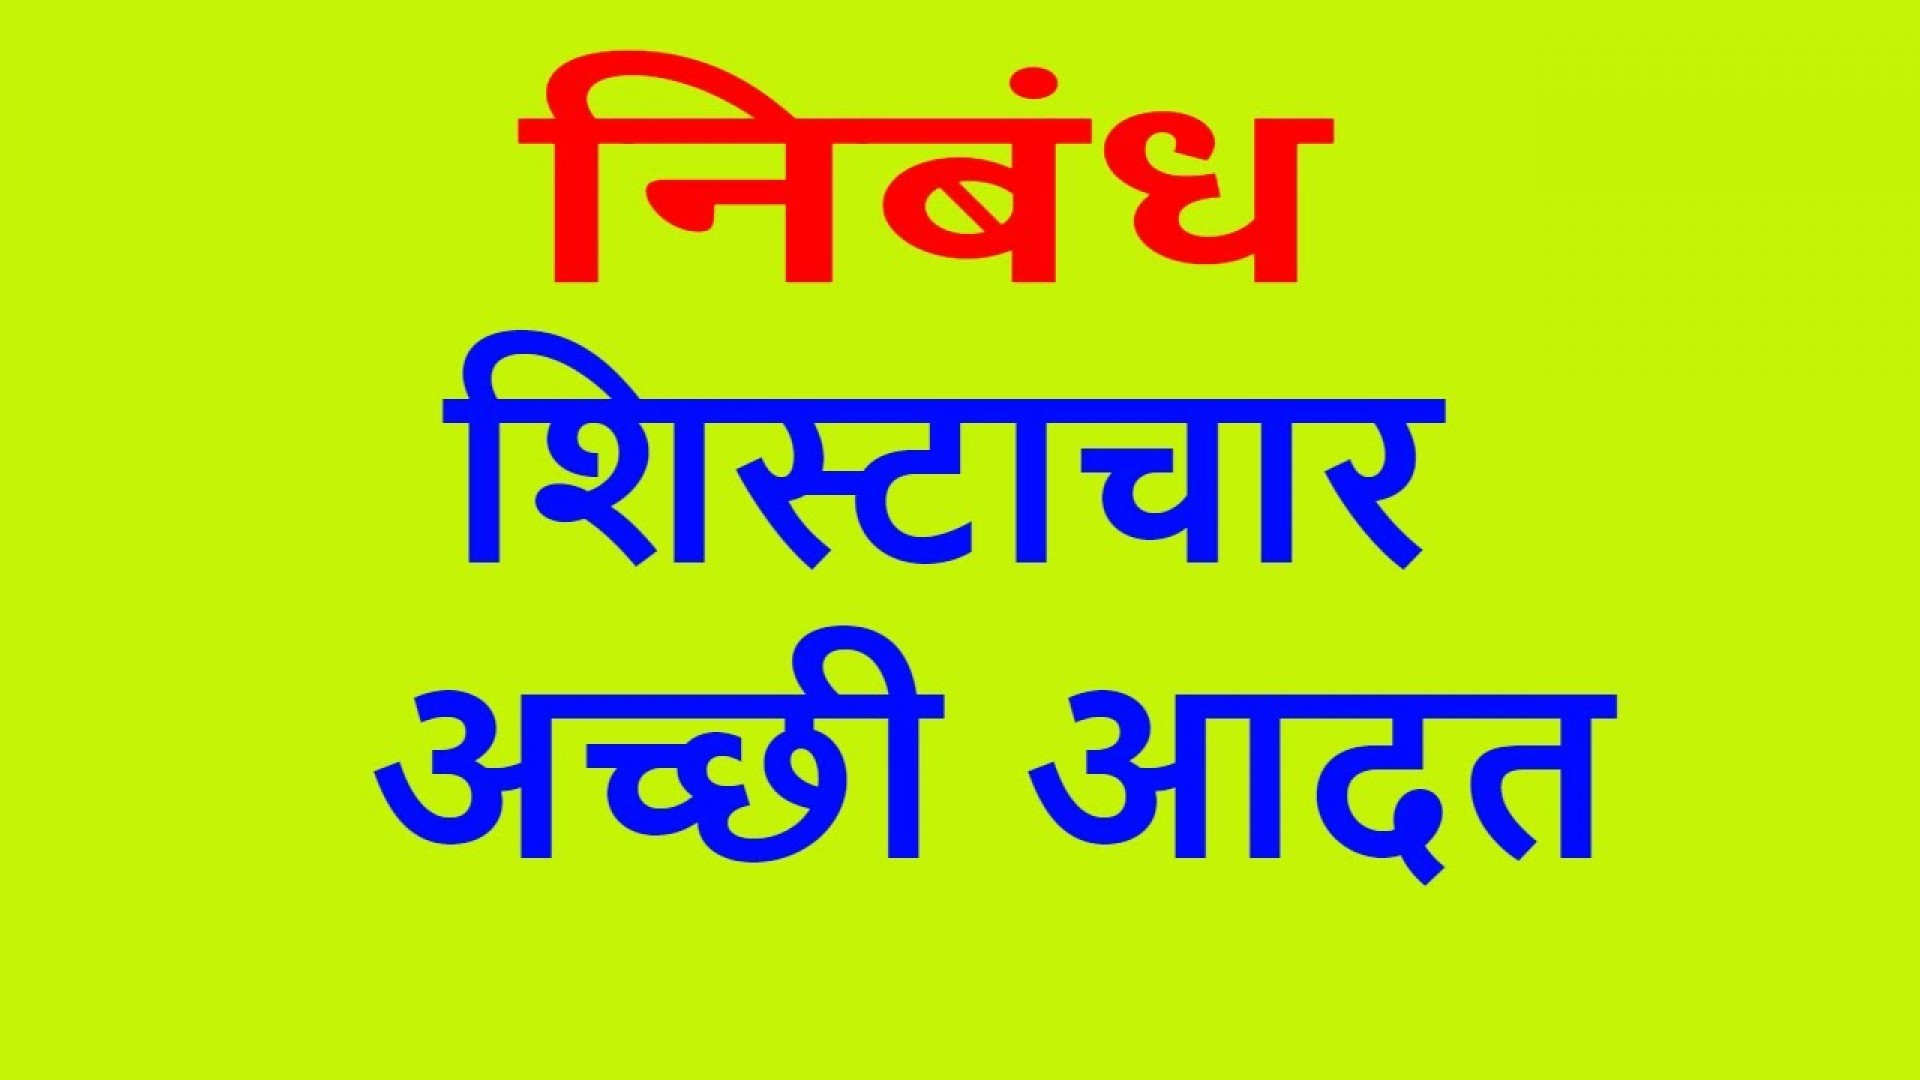 017 Maxresdefault Essay Example Good Habits In Exceptional Hindi And Bad Healthy Eating 1920